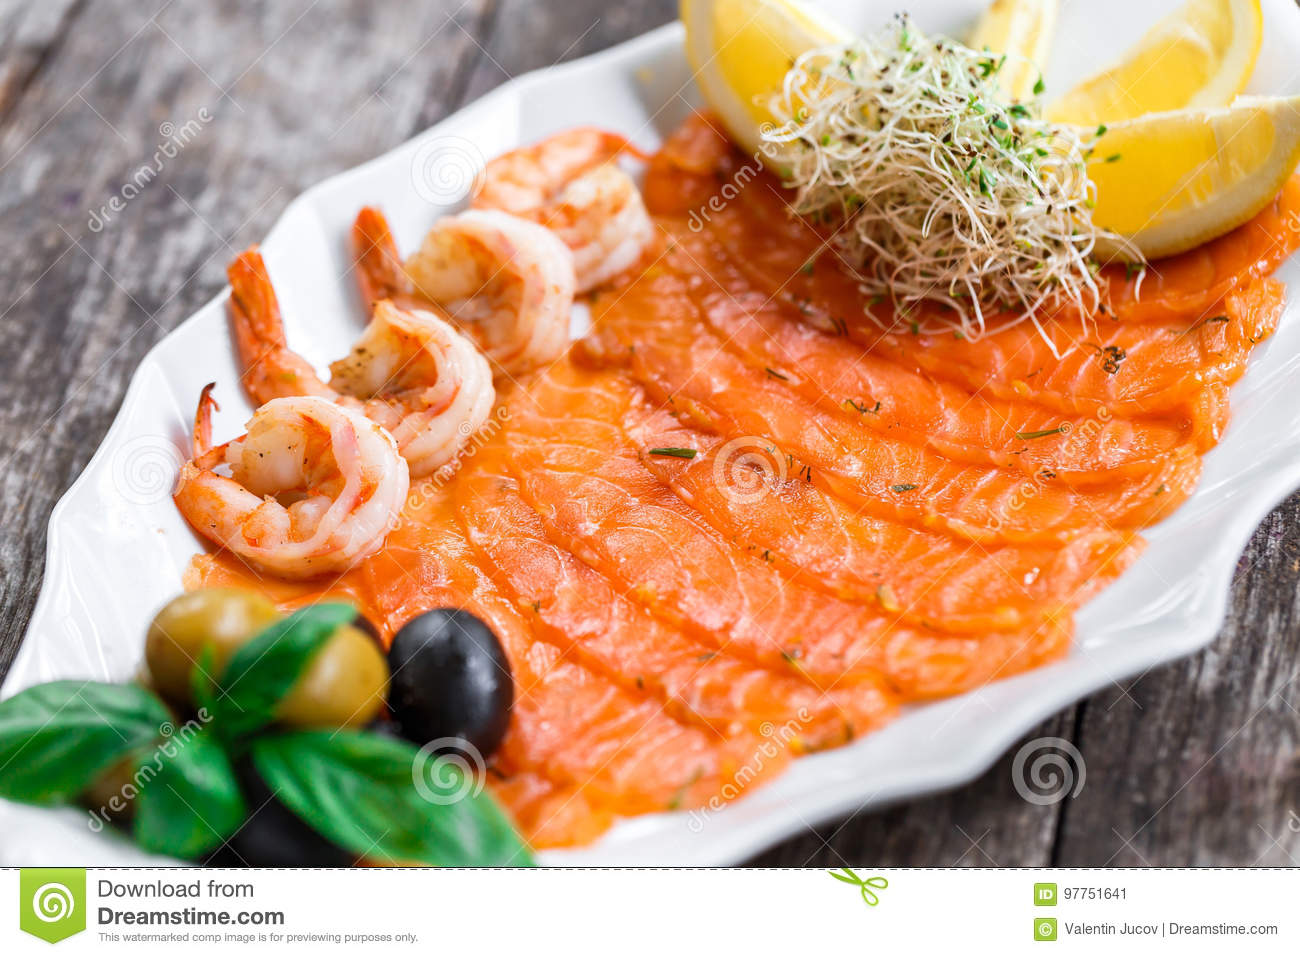 Seafood Platter With Salmon Slice And Shrimp Decorated With Olives And Lemon On Wooden Background Close Up Stock Image Image Of Appetizer Meal 97751641